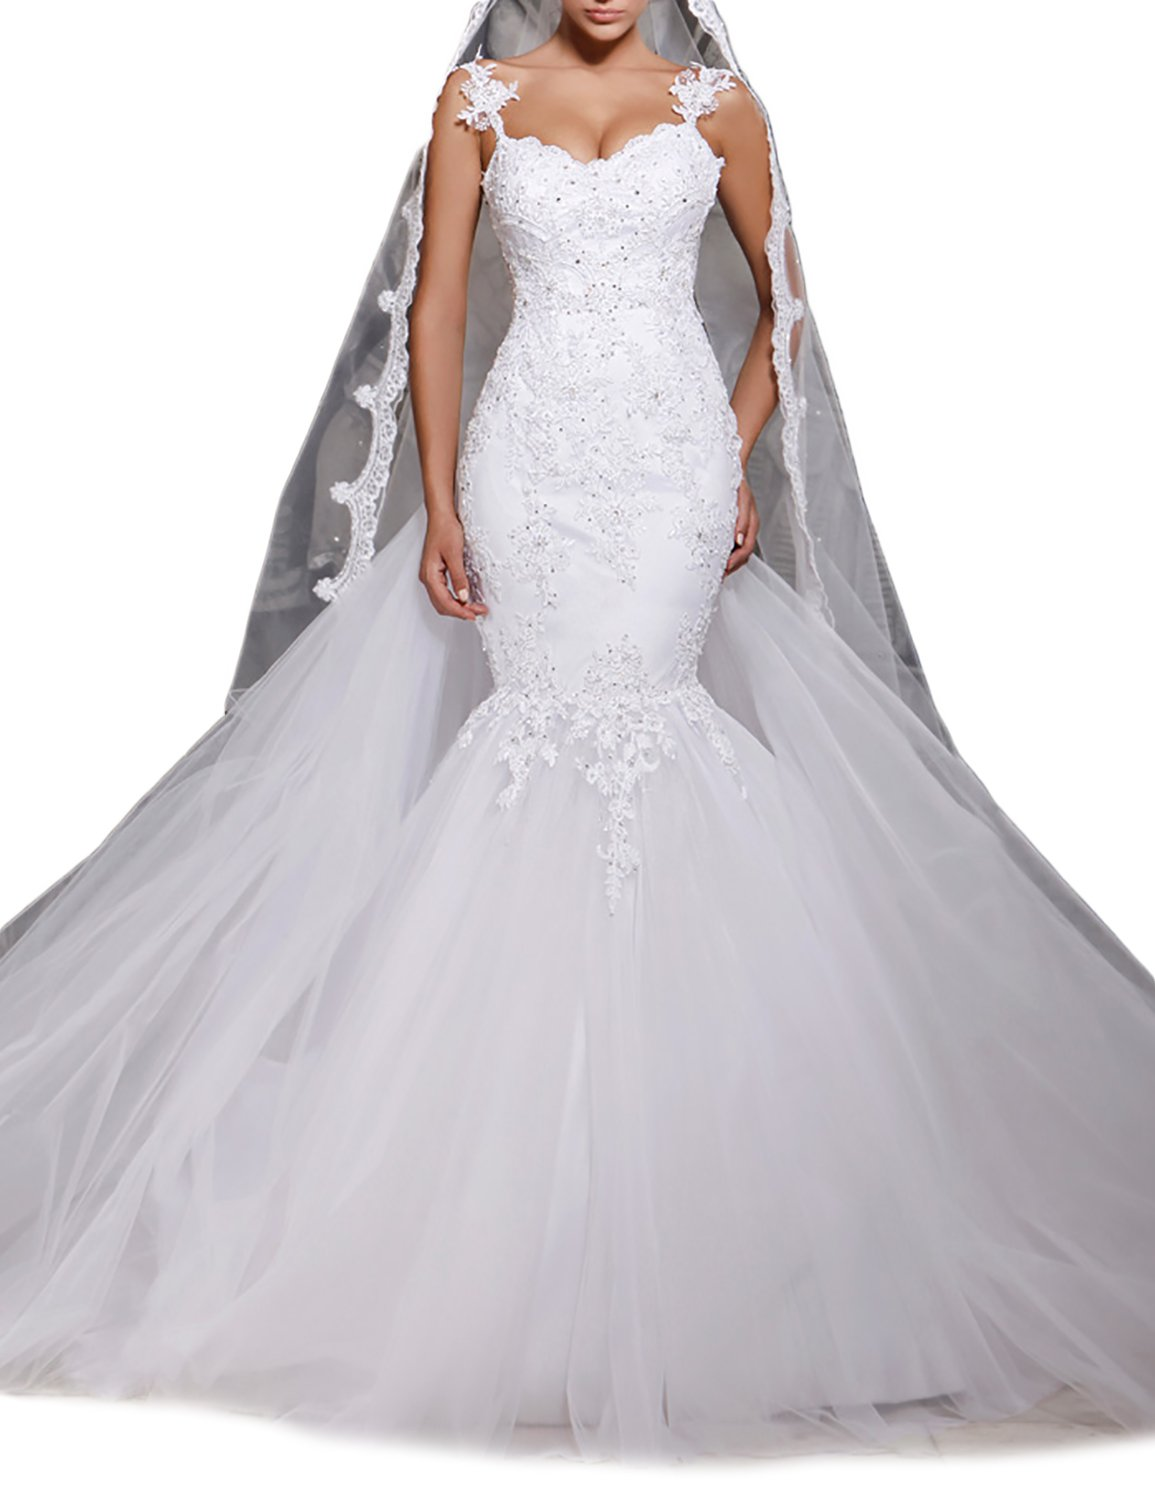 Udresses Womens Mermaid Lace Wedding Gown Beaded Tulle Bride Dress with Train UWD18 White 6